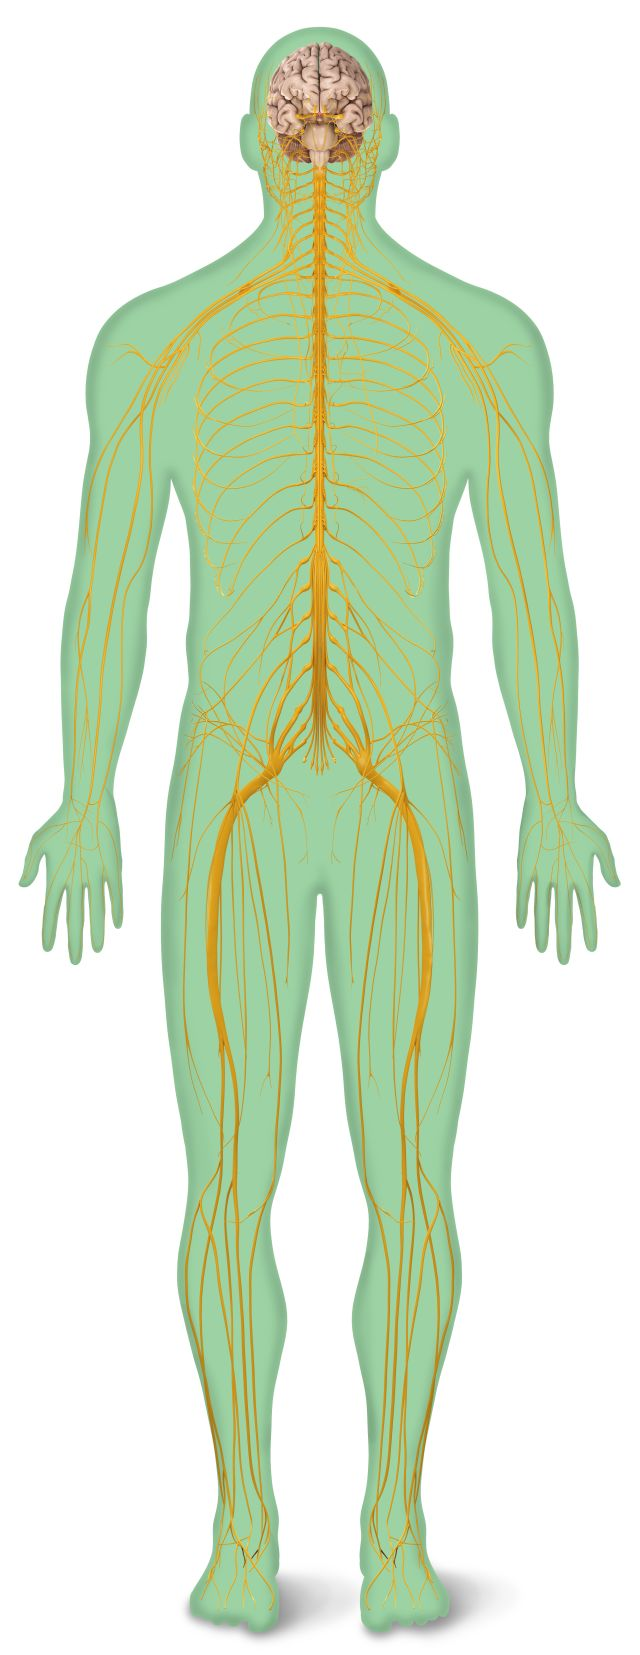 Human Body Systems | Parts of the Body | DK Find Out